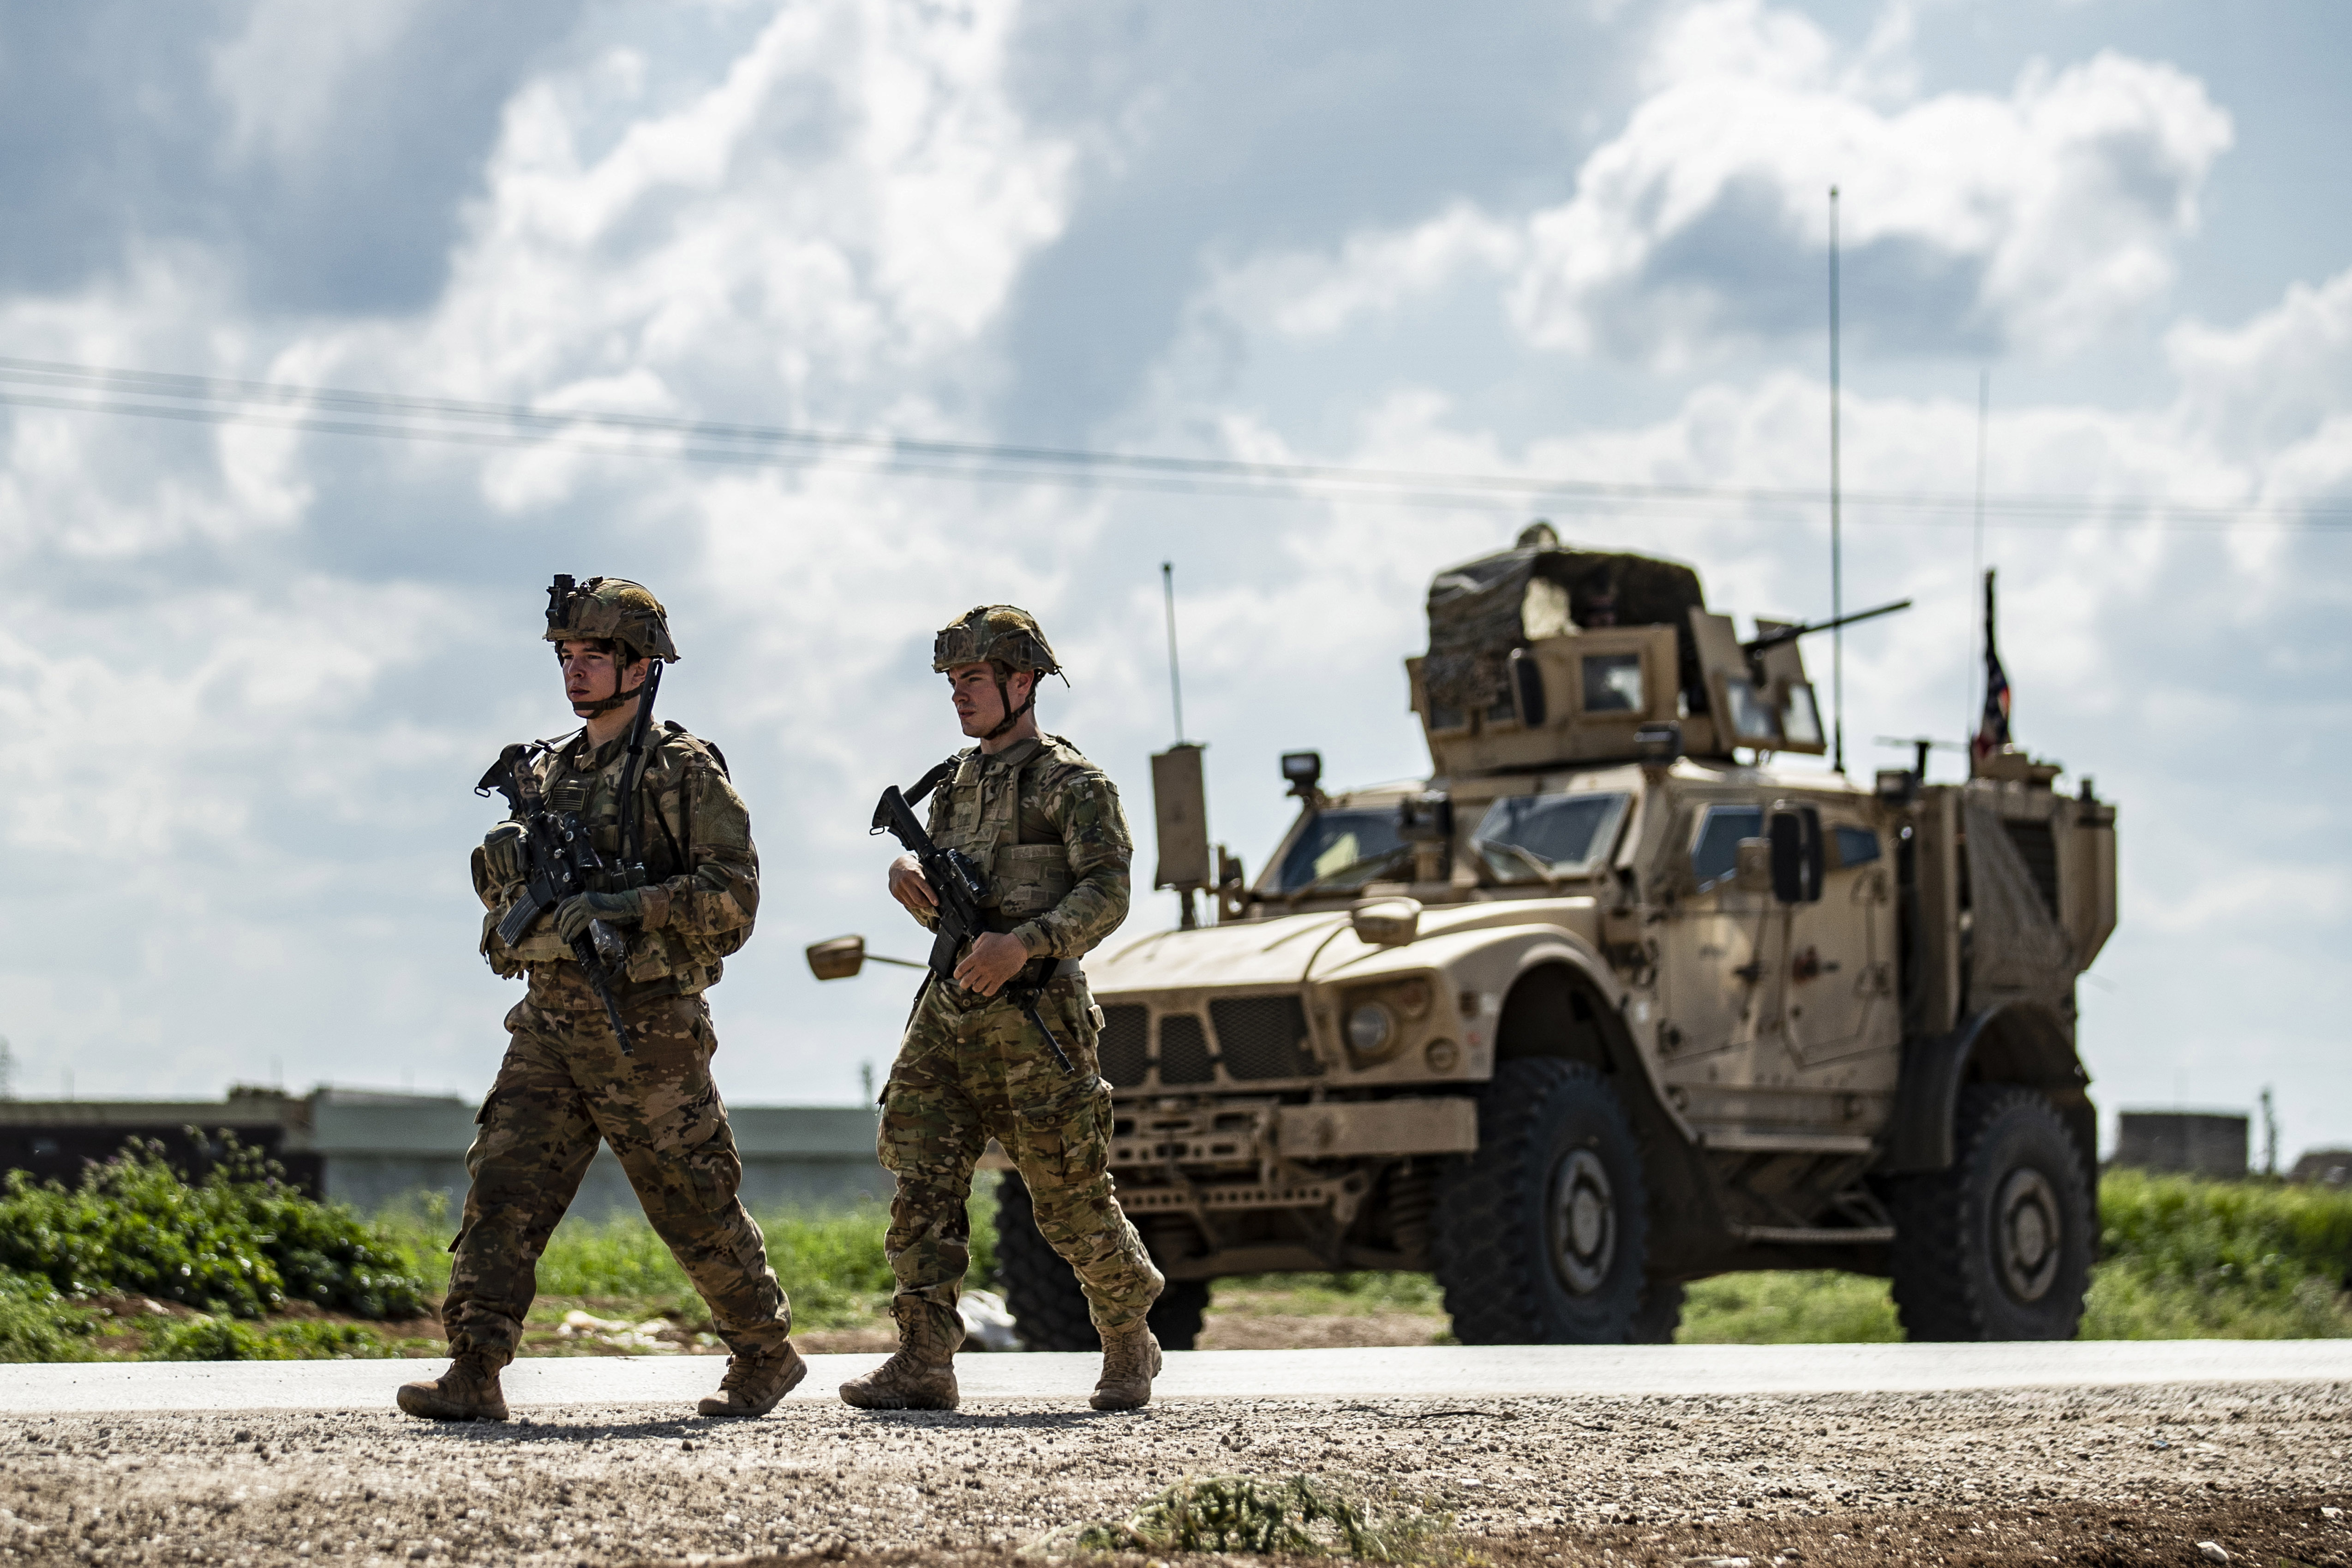 US soldiers walk along the side of a road across from a US military MRAP (Mine Resistant Ambush Protected) vehicle, near the village of Tannuriyah in the countryside east of Qamishli in Syria's northeastern Hasakah province on May 2, 2020. (Photo by DELIL SOULEIMAN/AFP via Getty Images)